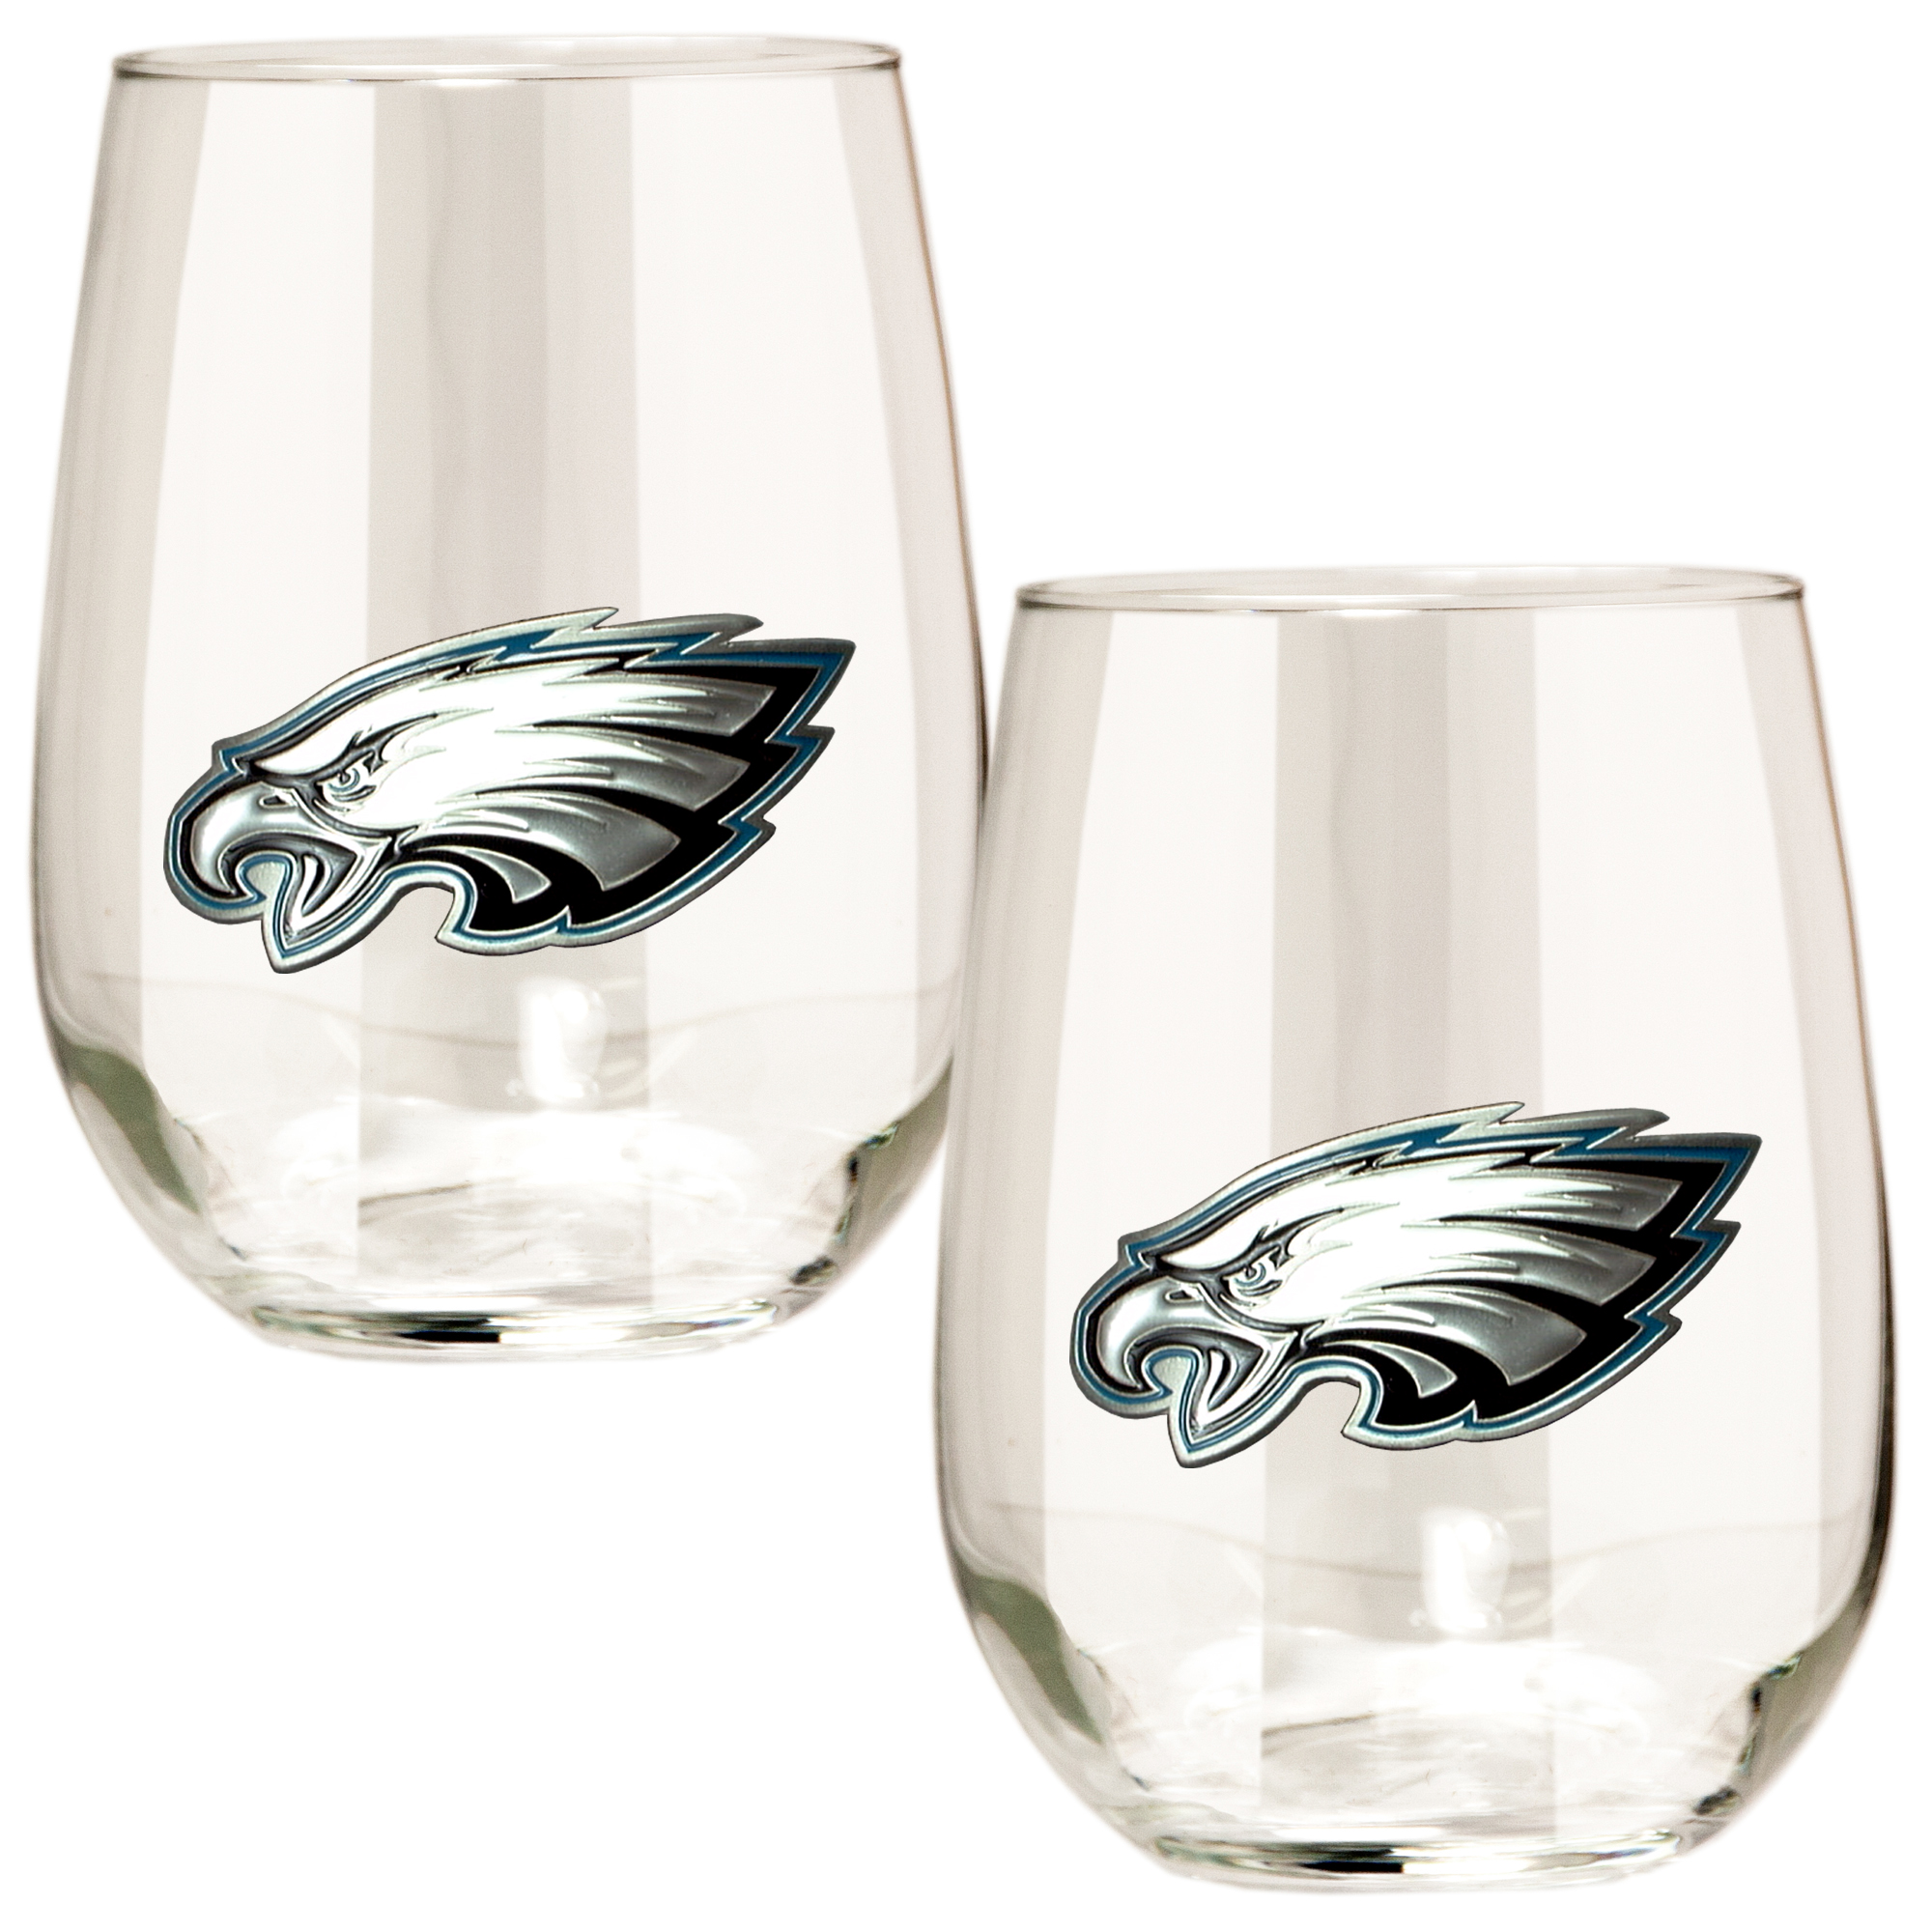 Philadelphia Eagles 15oz. Stemless Wine Glass Set - No Size